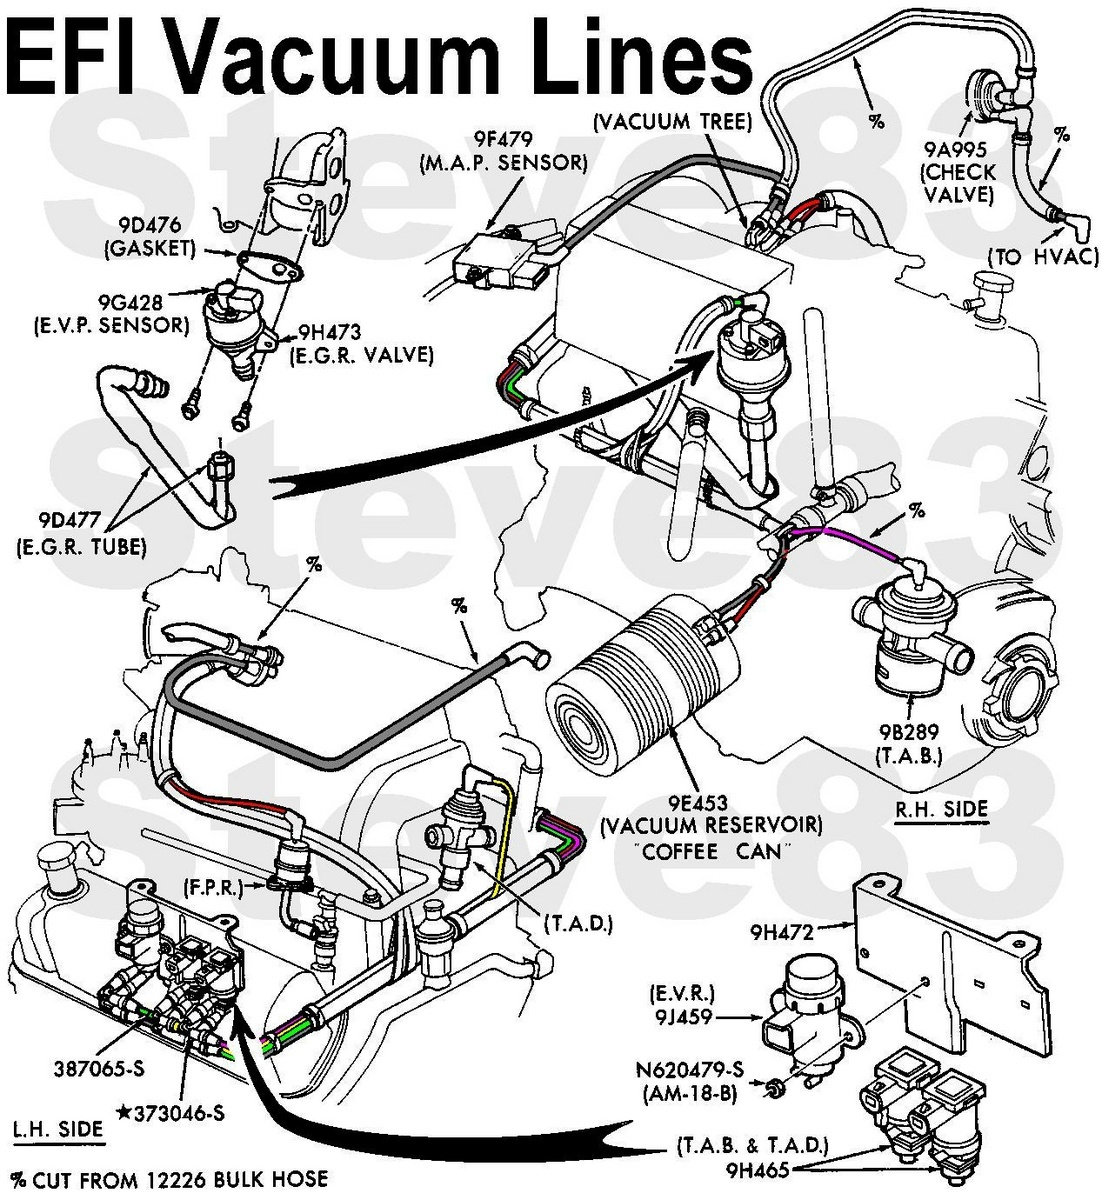 95 Accord Headlights Wiring Harness further 95 Buick Lesabre Alternator Wiring Diagram additionally Jeep Wrangler Yj Wiring Diagram Harness And Electrical System Troubleshooting 95 furthermore 88 4runner Wiring Diagram as well 2002 Ford Mustang Fuse Panel Under Dash Diagram Mustang. on 1992 toyota camry radio wiring harness